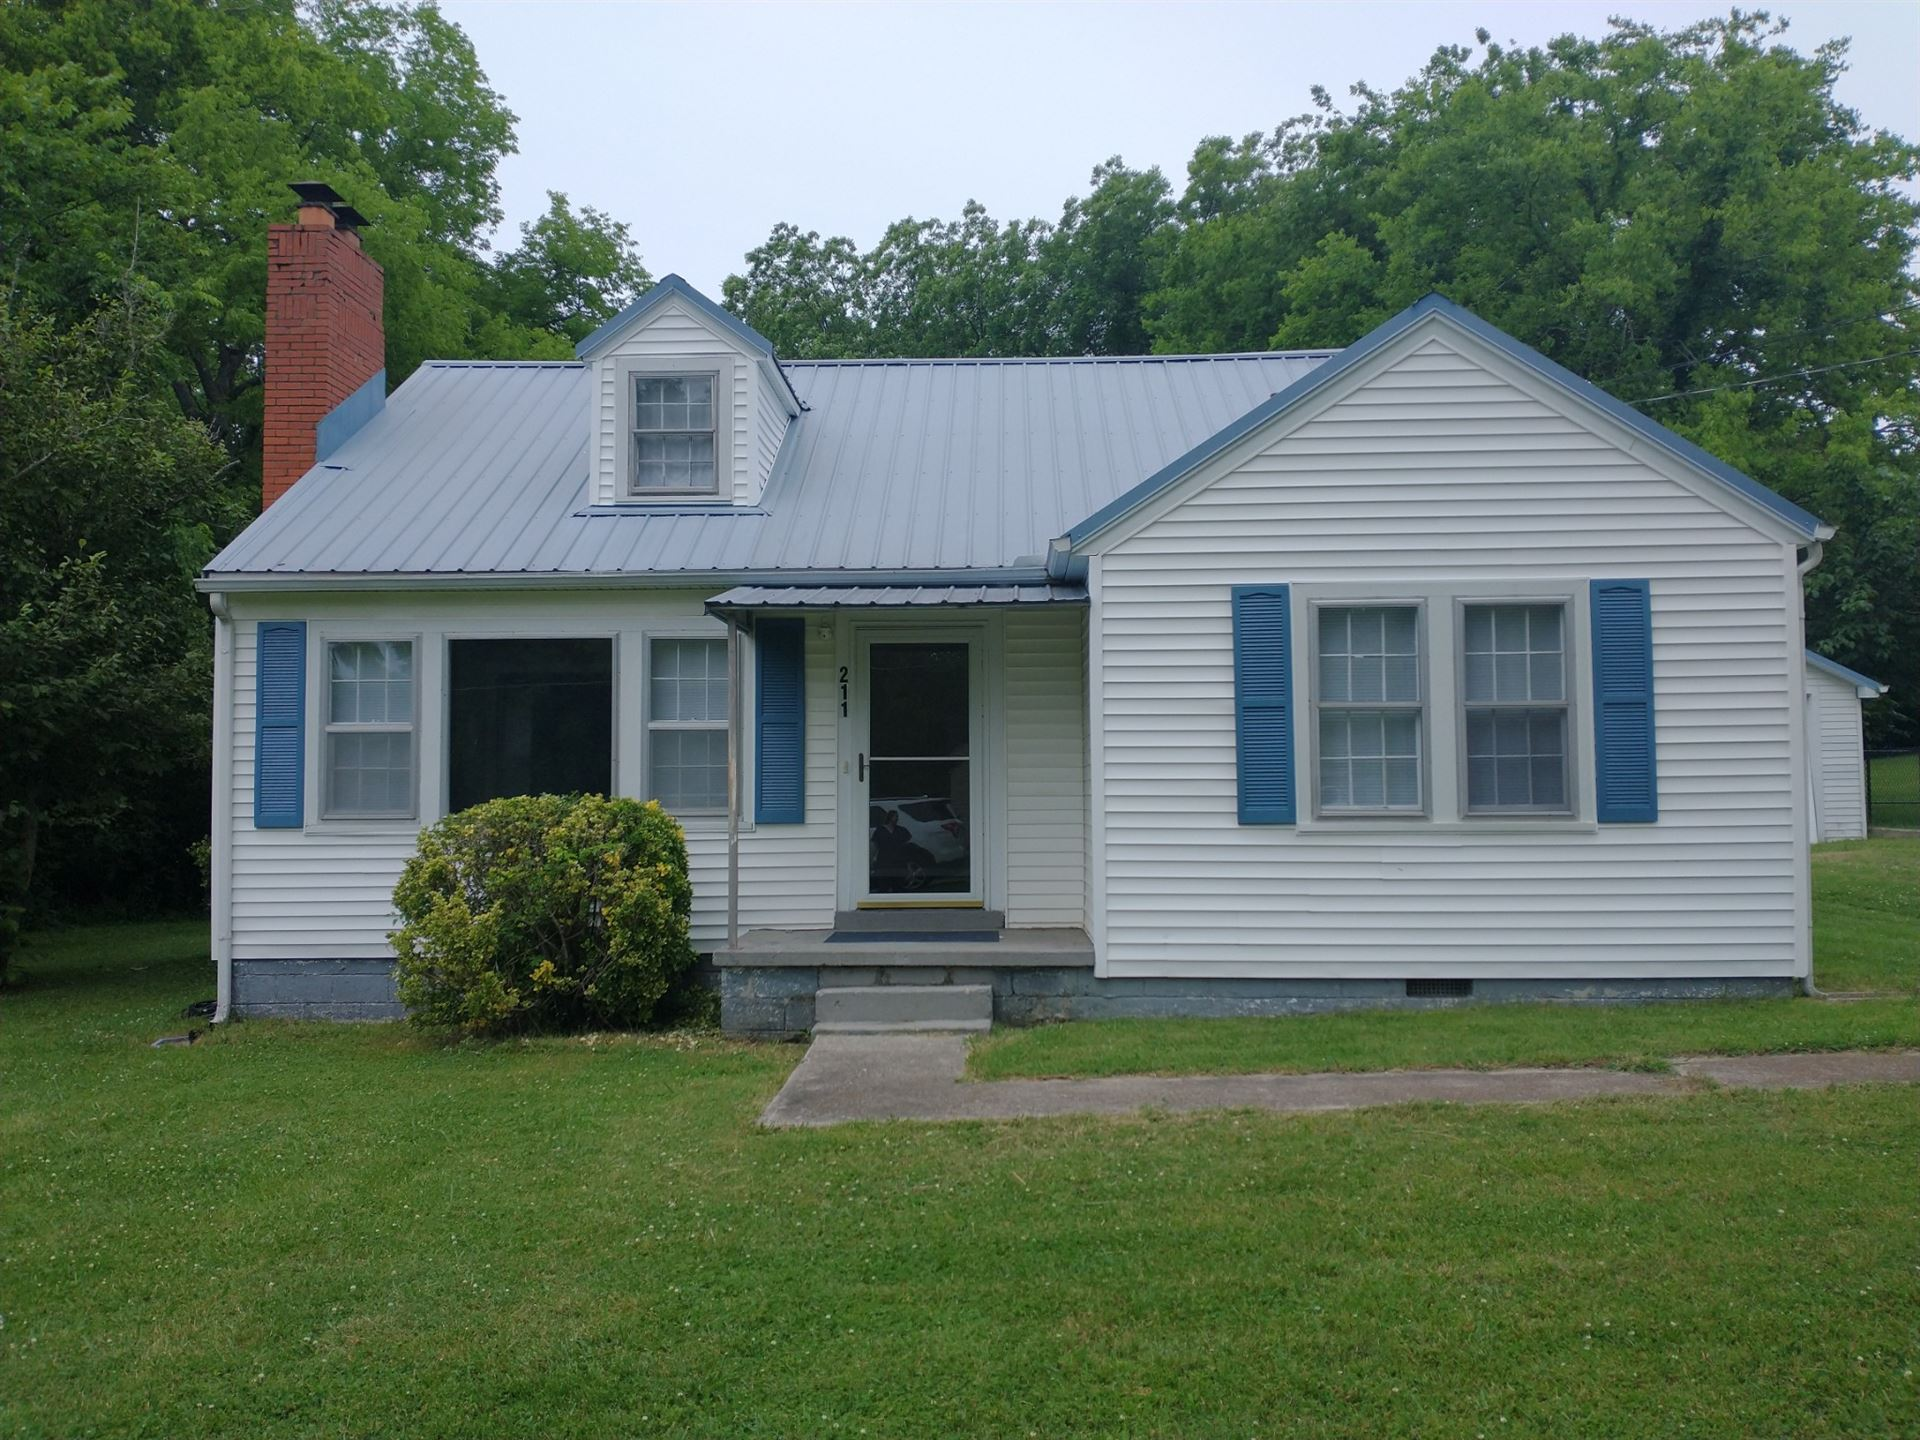 211 Hickory Dr, Shelbyville, TN 37160 - MLS#: 2264589